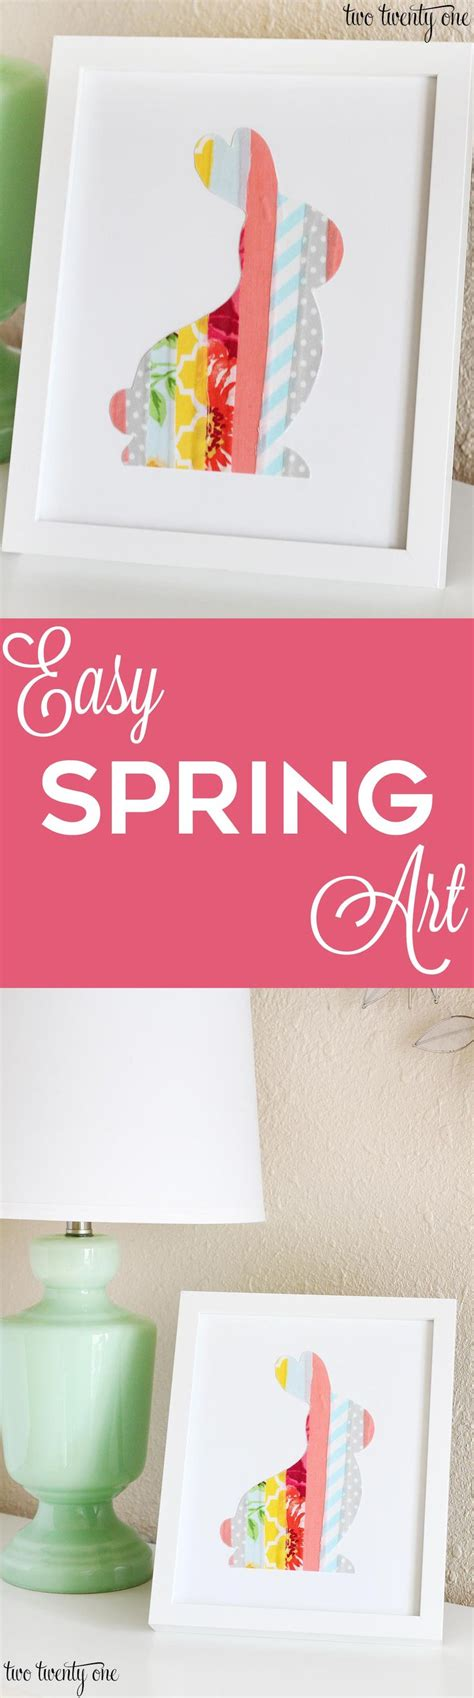 1000+ Images About Easter & Spring On Pinterest  Shape